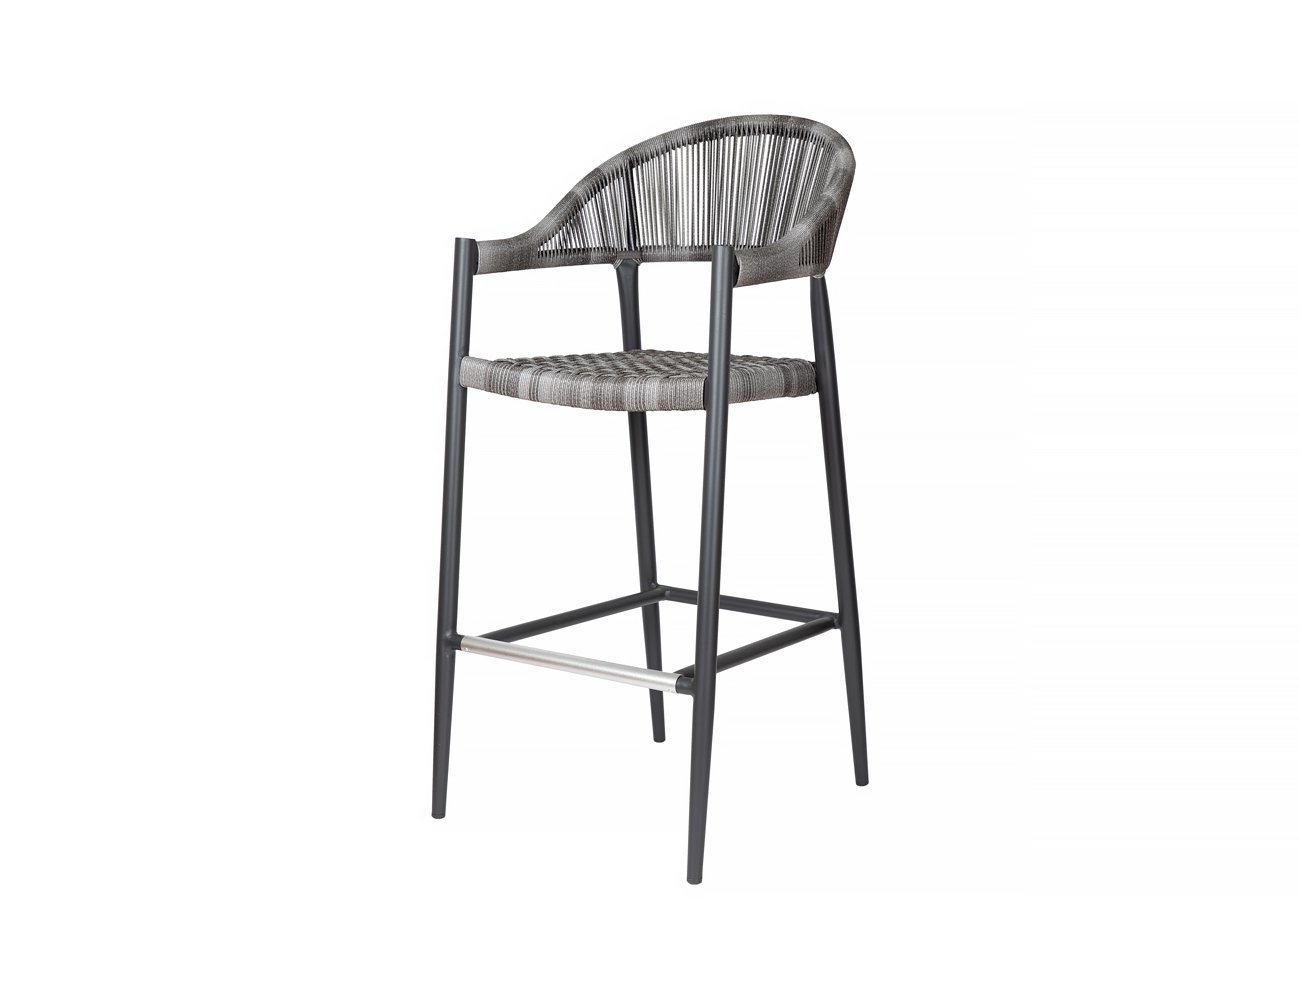 Parakeet Aluminium and Rattan Outdoor Bar Chair